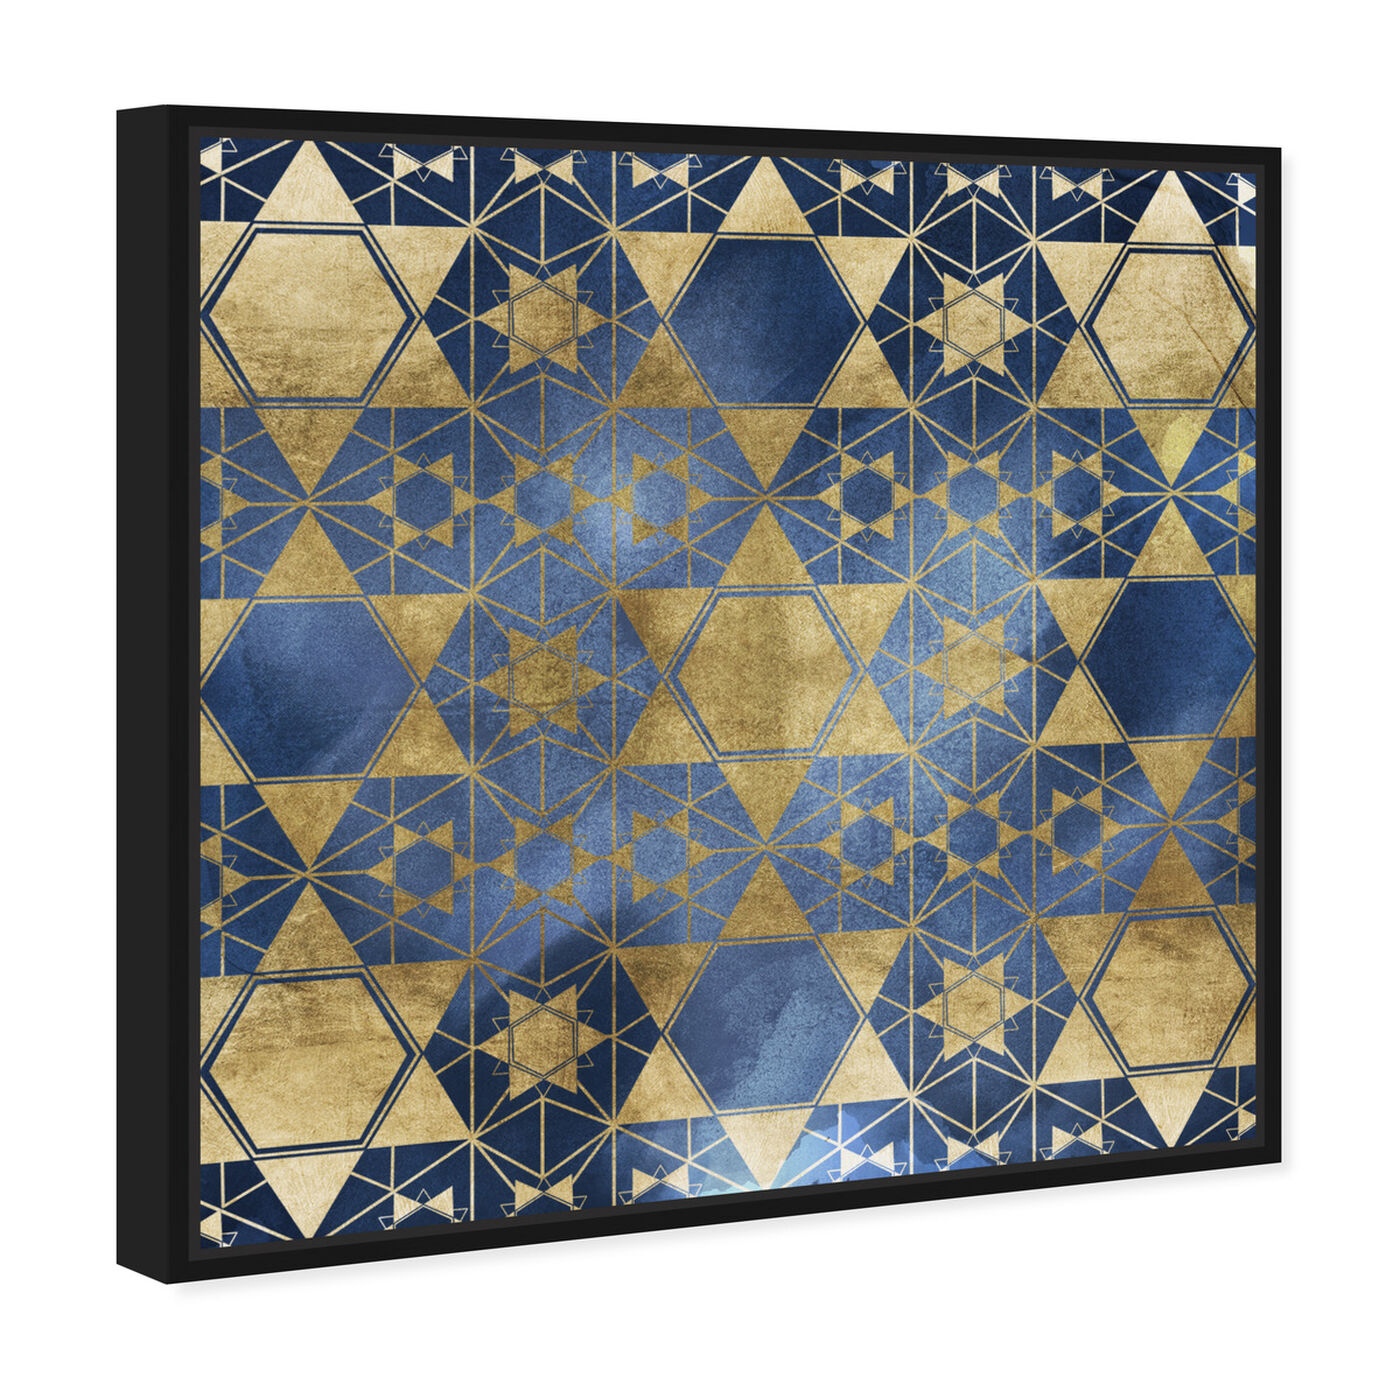 Angled view of Golden Blue Star Decorative featuring abstract and patterns art.